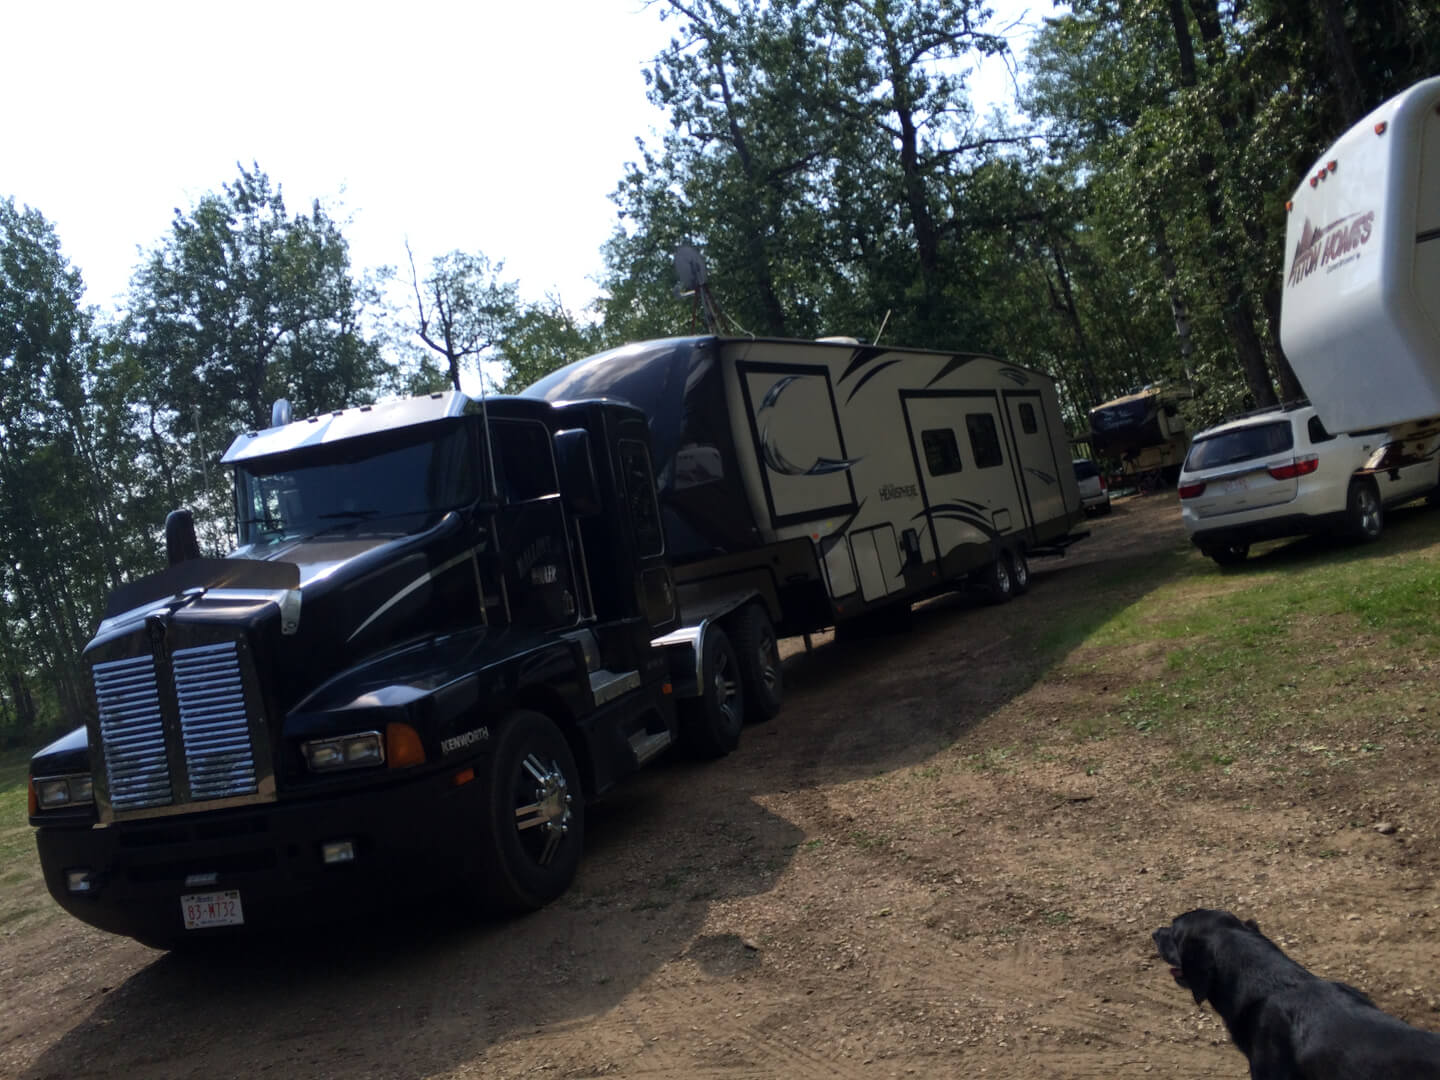 Hallywood RV Park